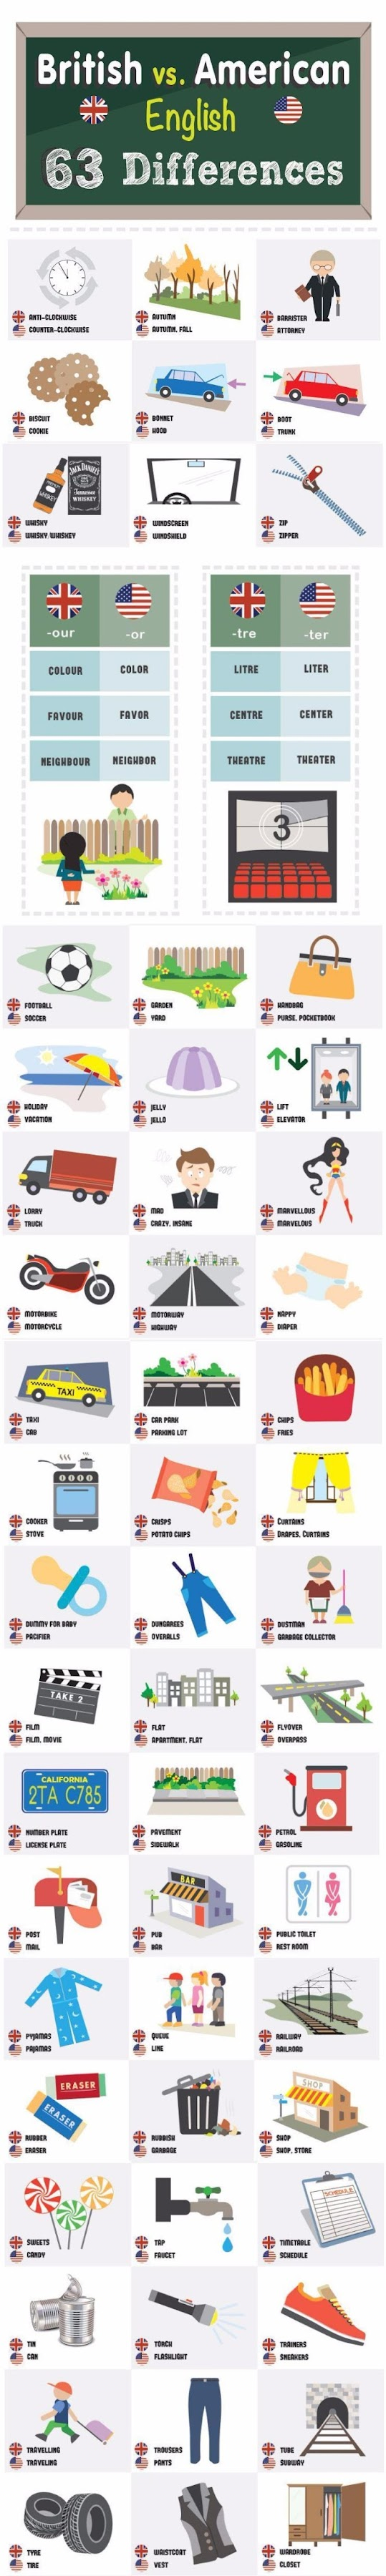 British vs American English = 63 differences picture